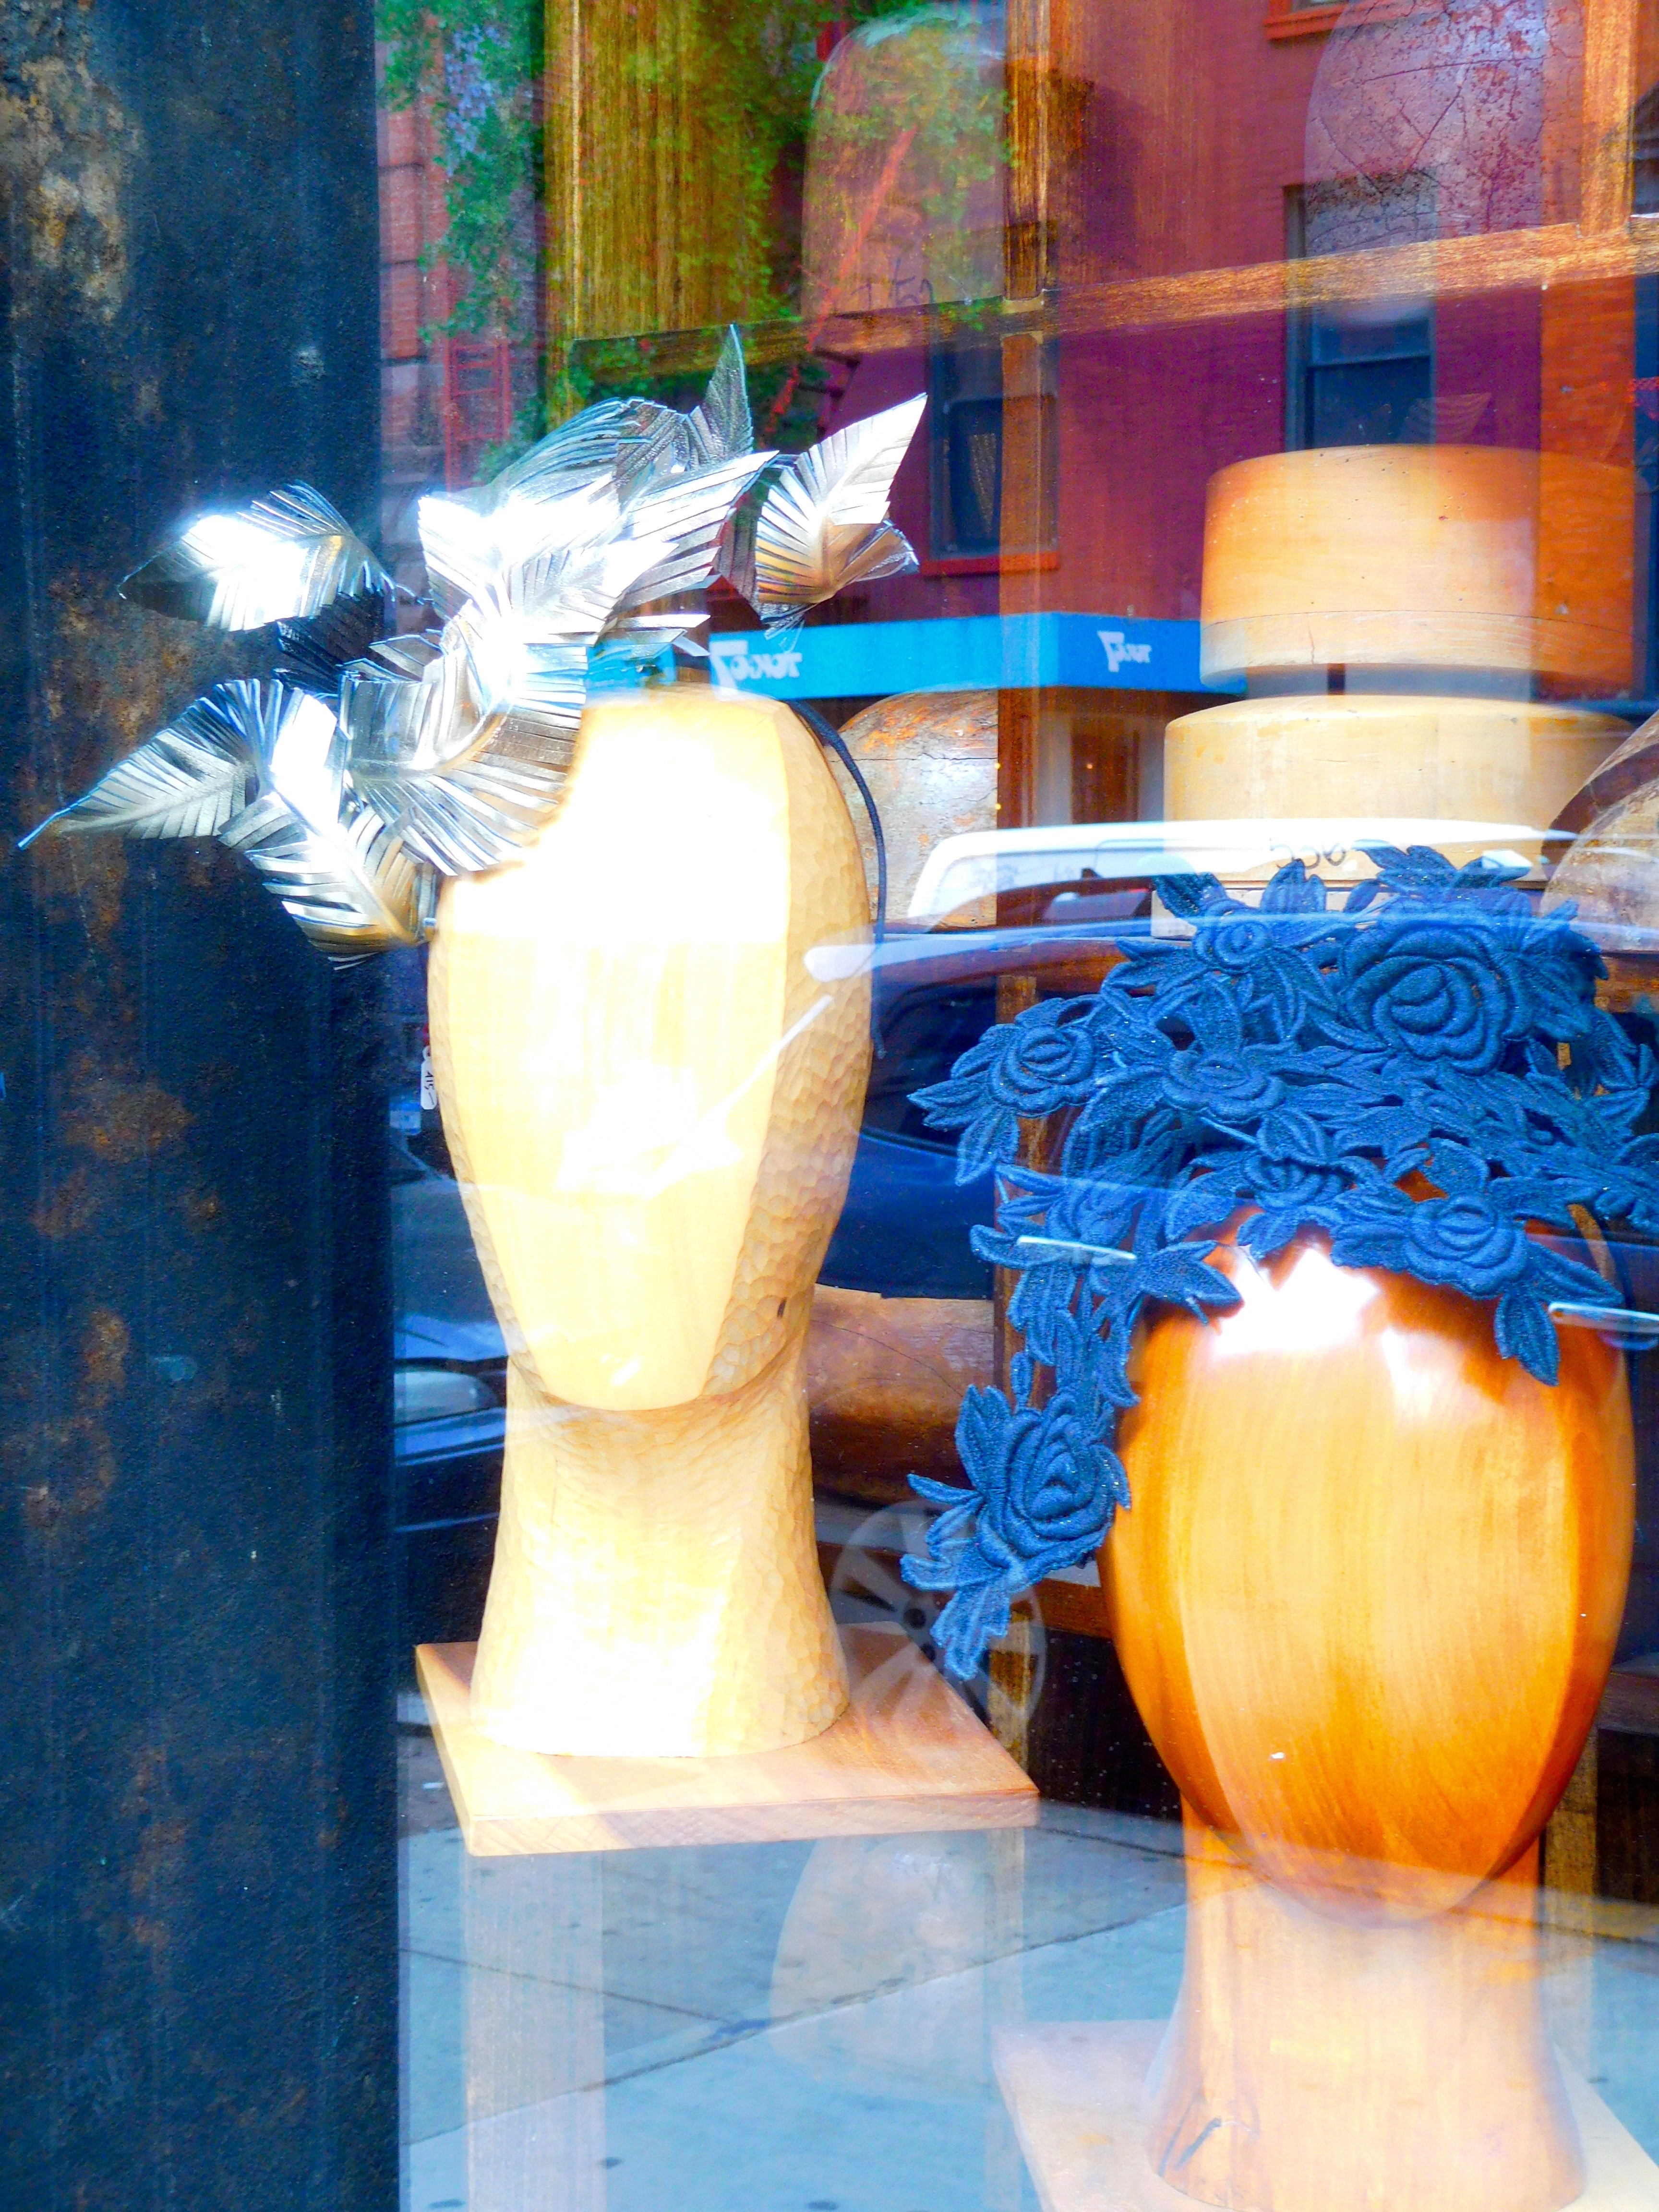 Two mannequin heads in a shop window wear artful headpieces.